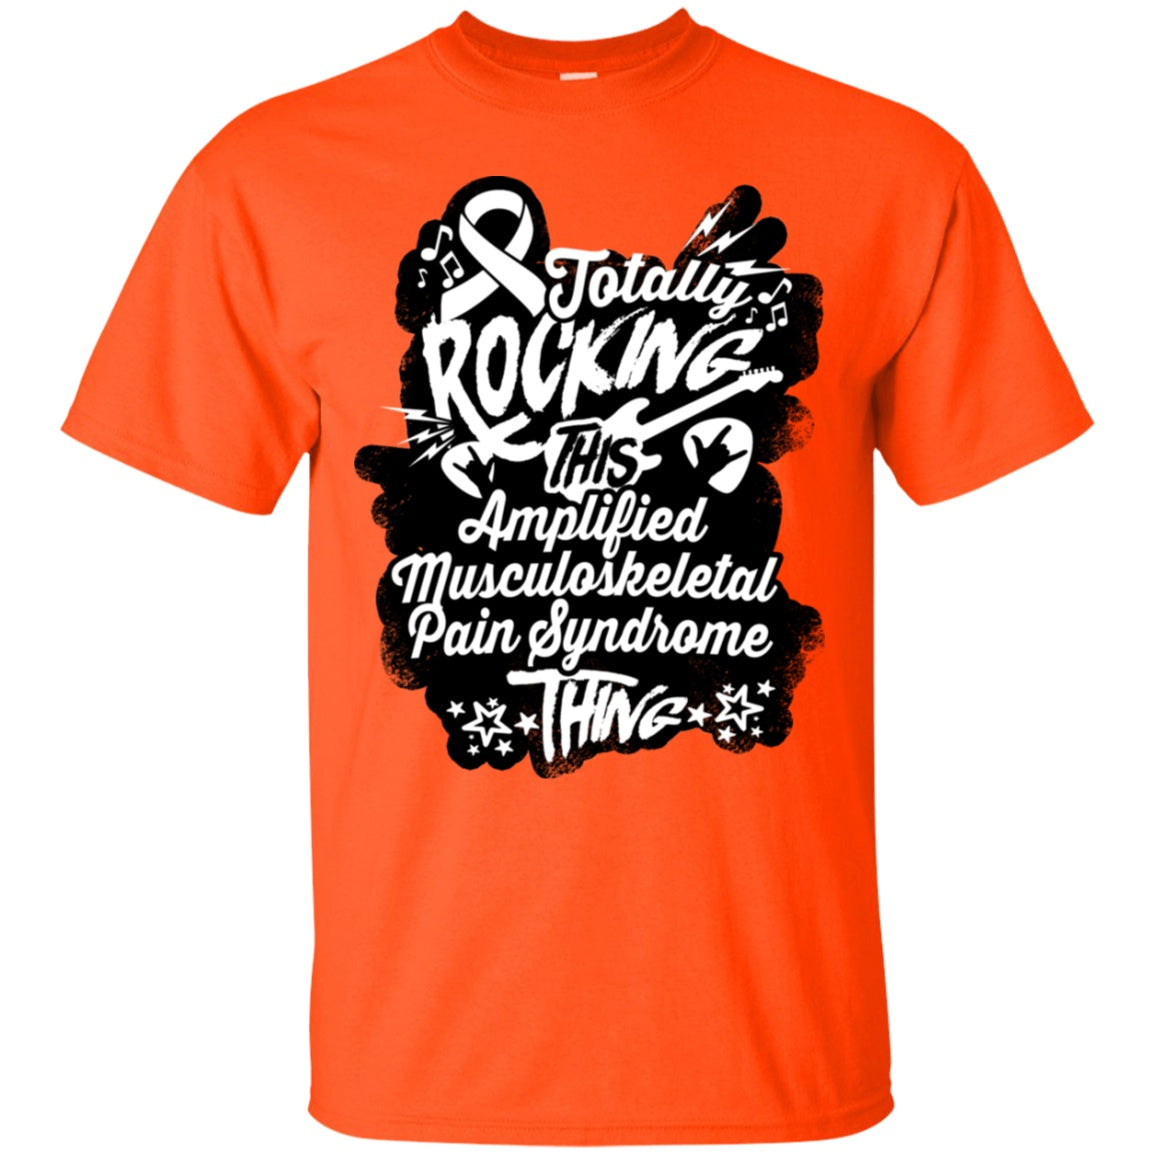 Rocking Amplified Musculoskeletal Pain Syndrome Unisex Shirt